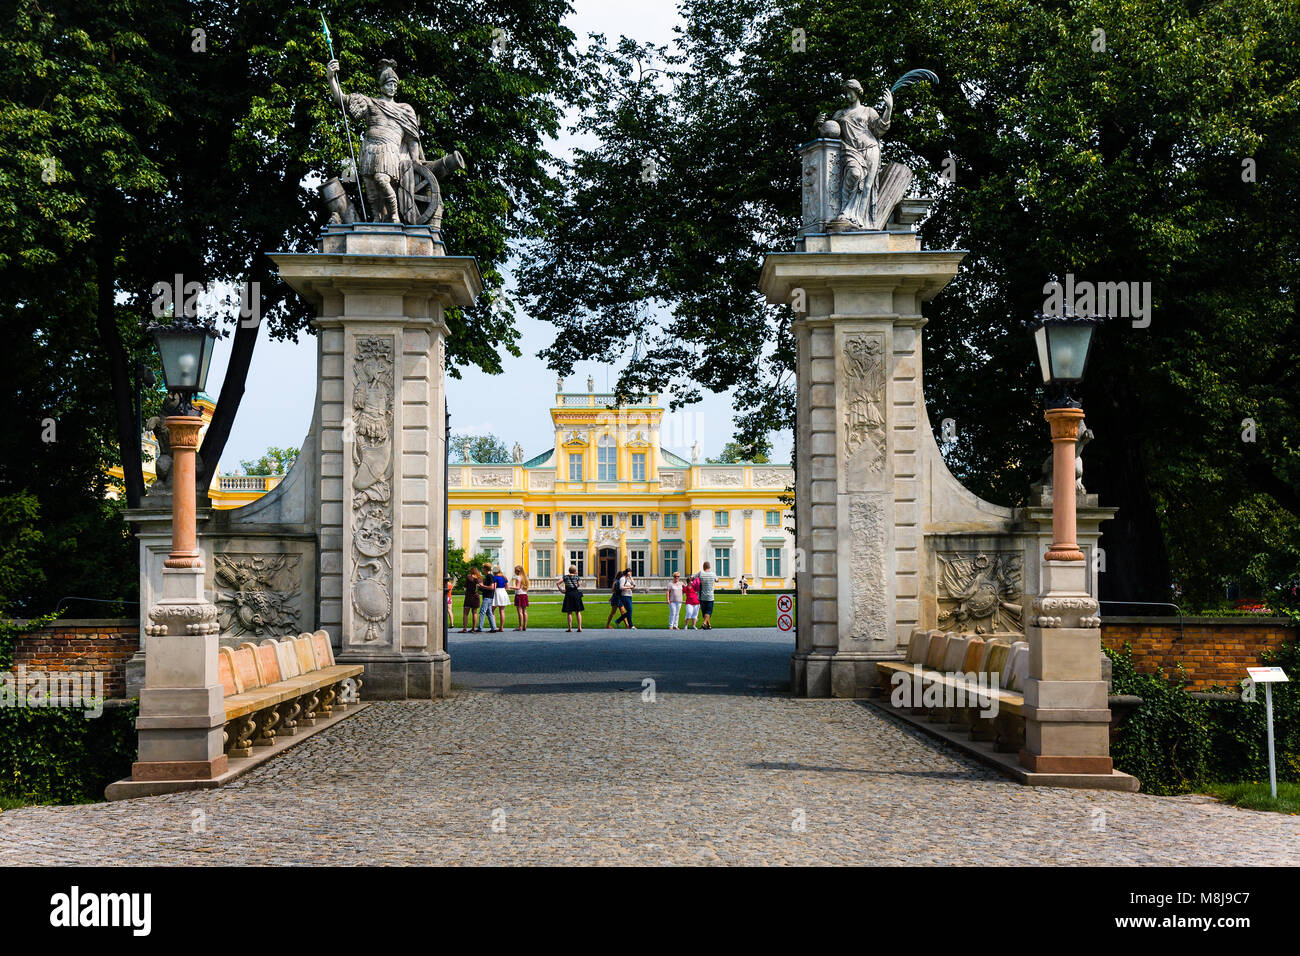 WARSAW, POLAND - JULY 26, 2014:  Tourists at the main entrance of the Wilanow Royal Palace park Stock Photo